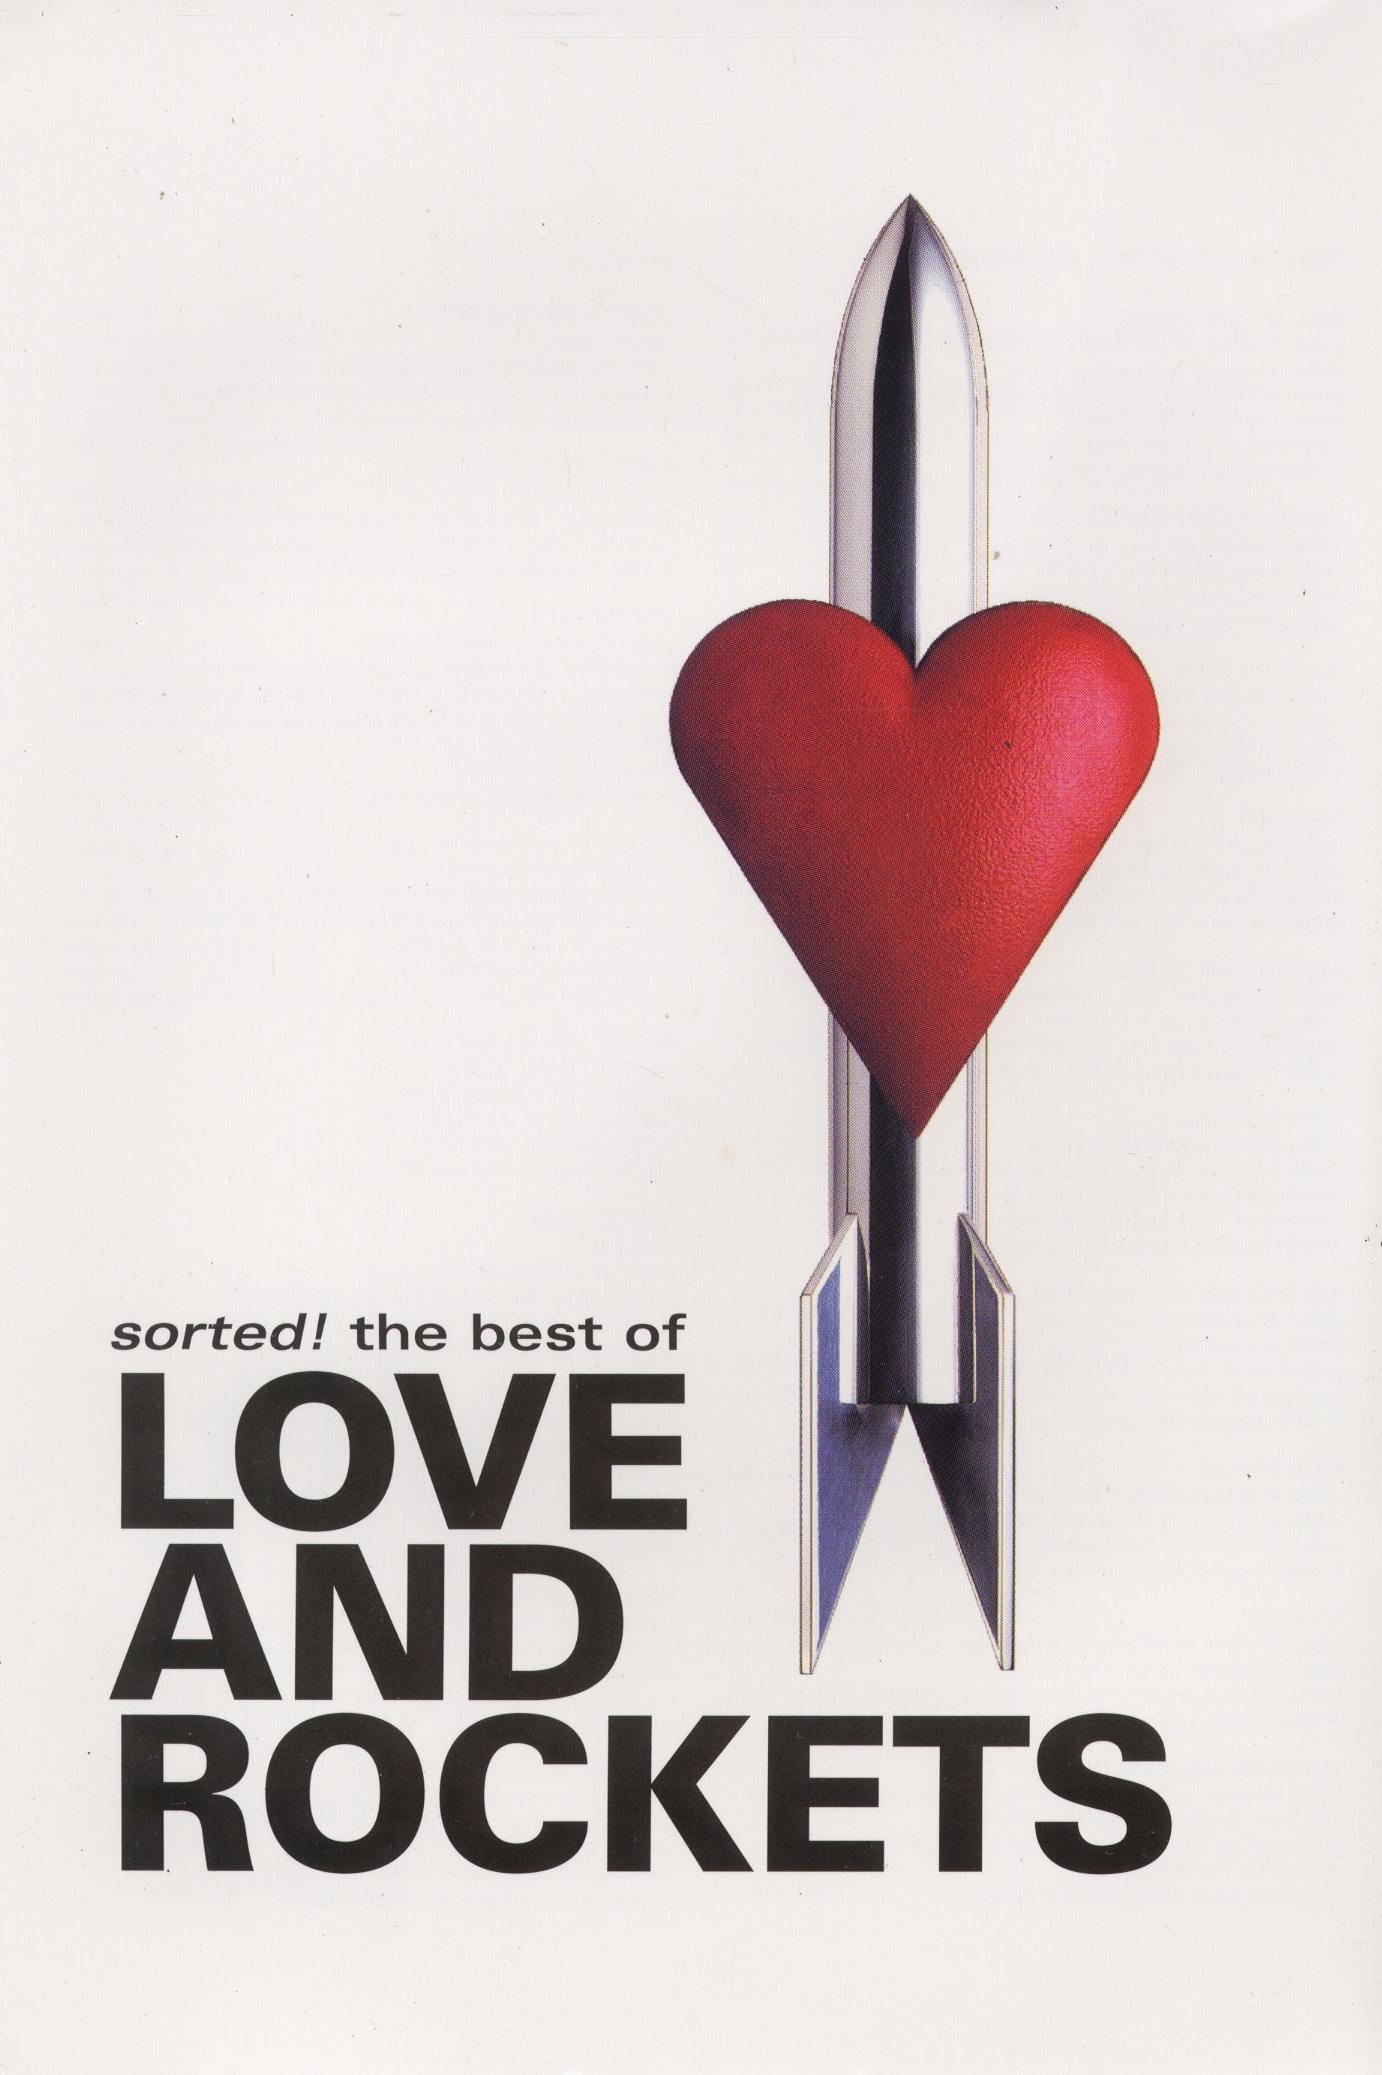 Love and Rockets: Sorted! - The Best of Love and Rockets